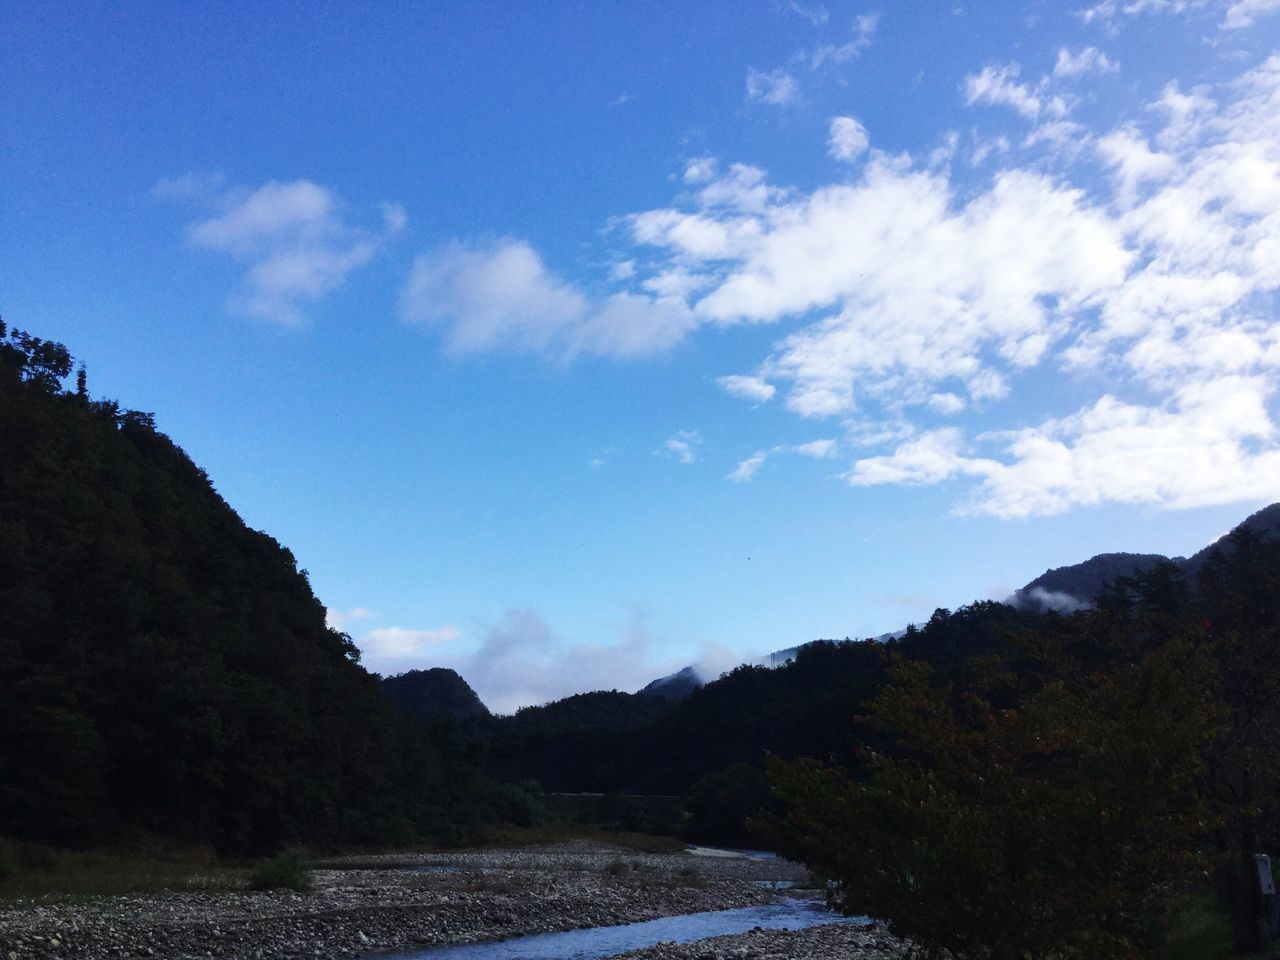 landscape, nature, sky, tranquility, scenics, mountain, tranquil scene, beauty in nature, no people, outdoors, day, tree, water